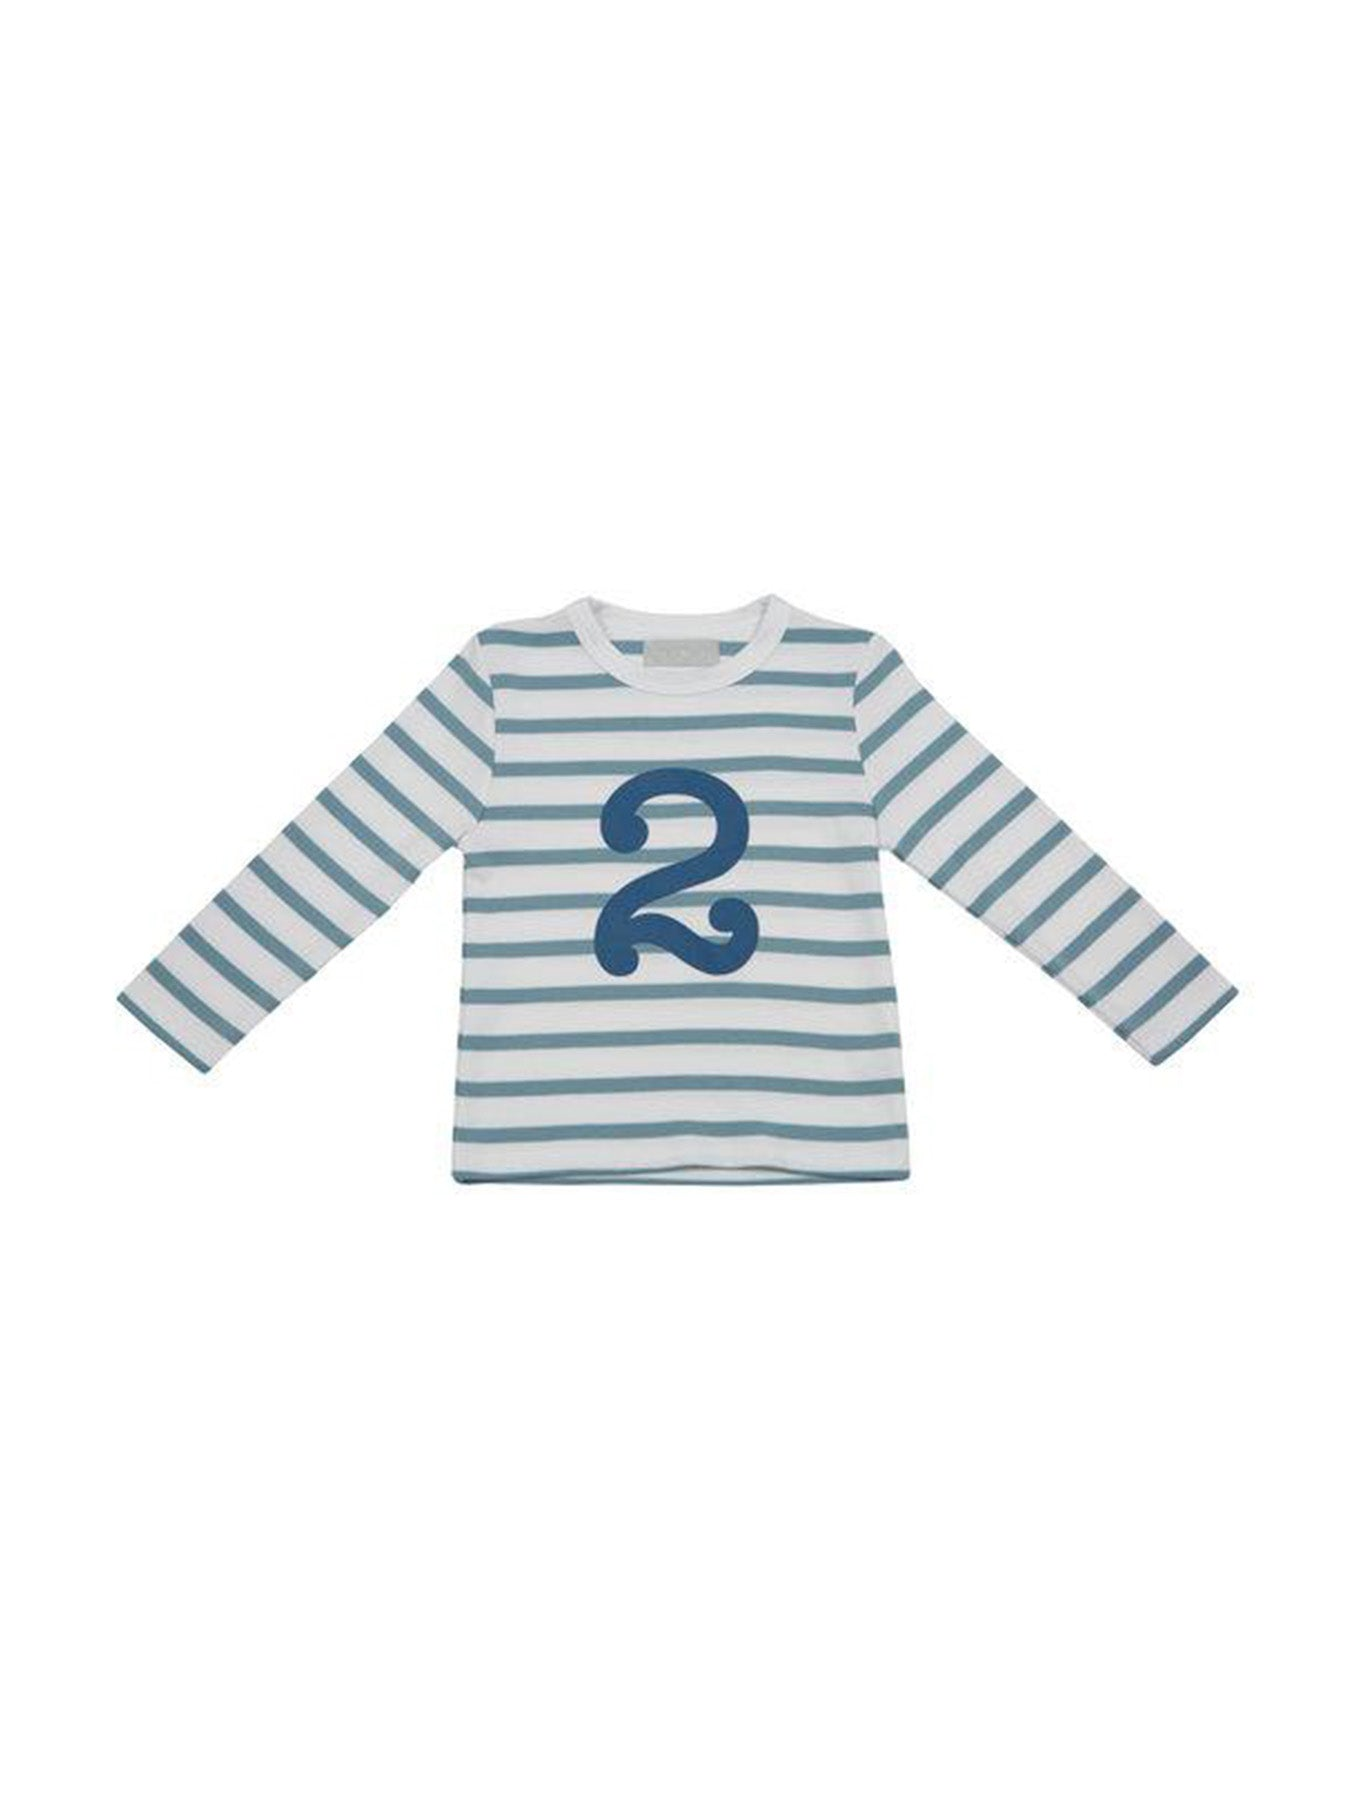 Ocean Blue & White Breton Striped Number Tee (2/3 Years)